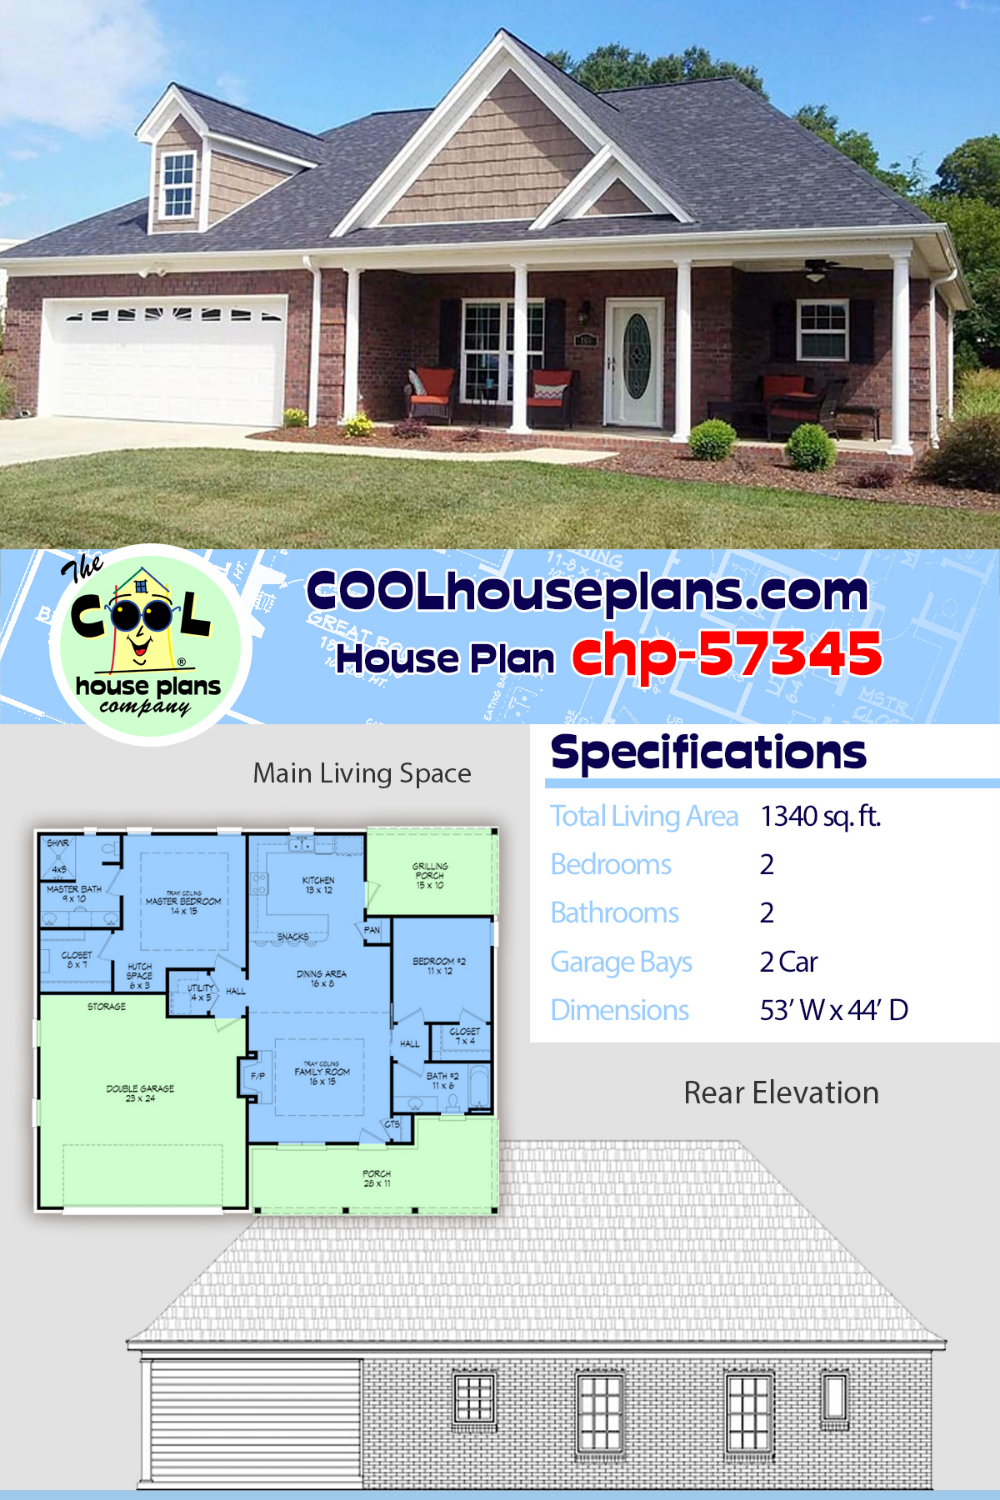 House Plan Chp 57345 At Coolhouseplans Com House Plans Family House Plans Architect House